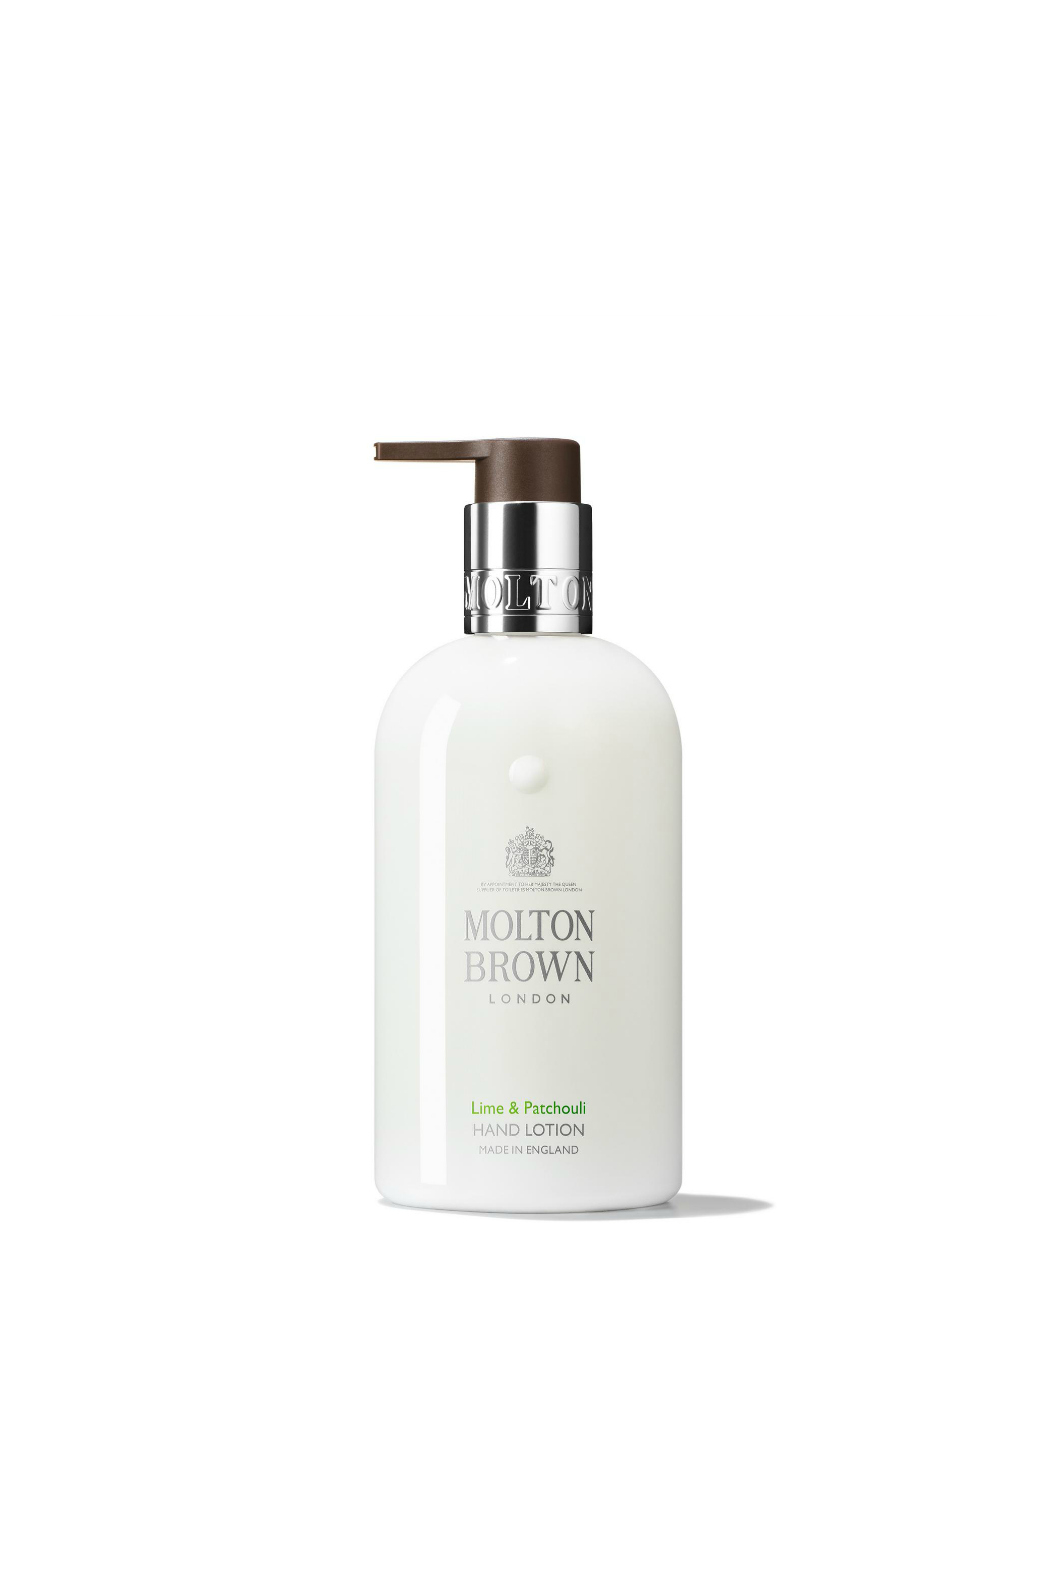 Molton Brown LIME & PATCHOULI HAND LOTION - Main Image